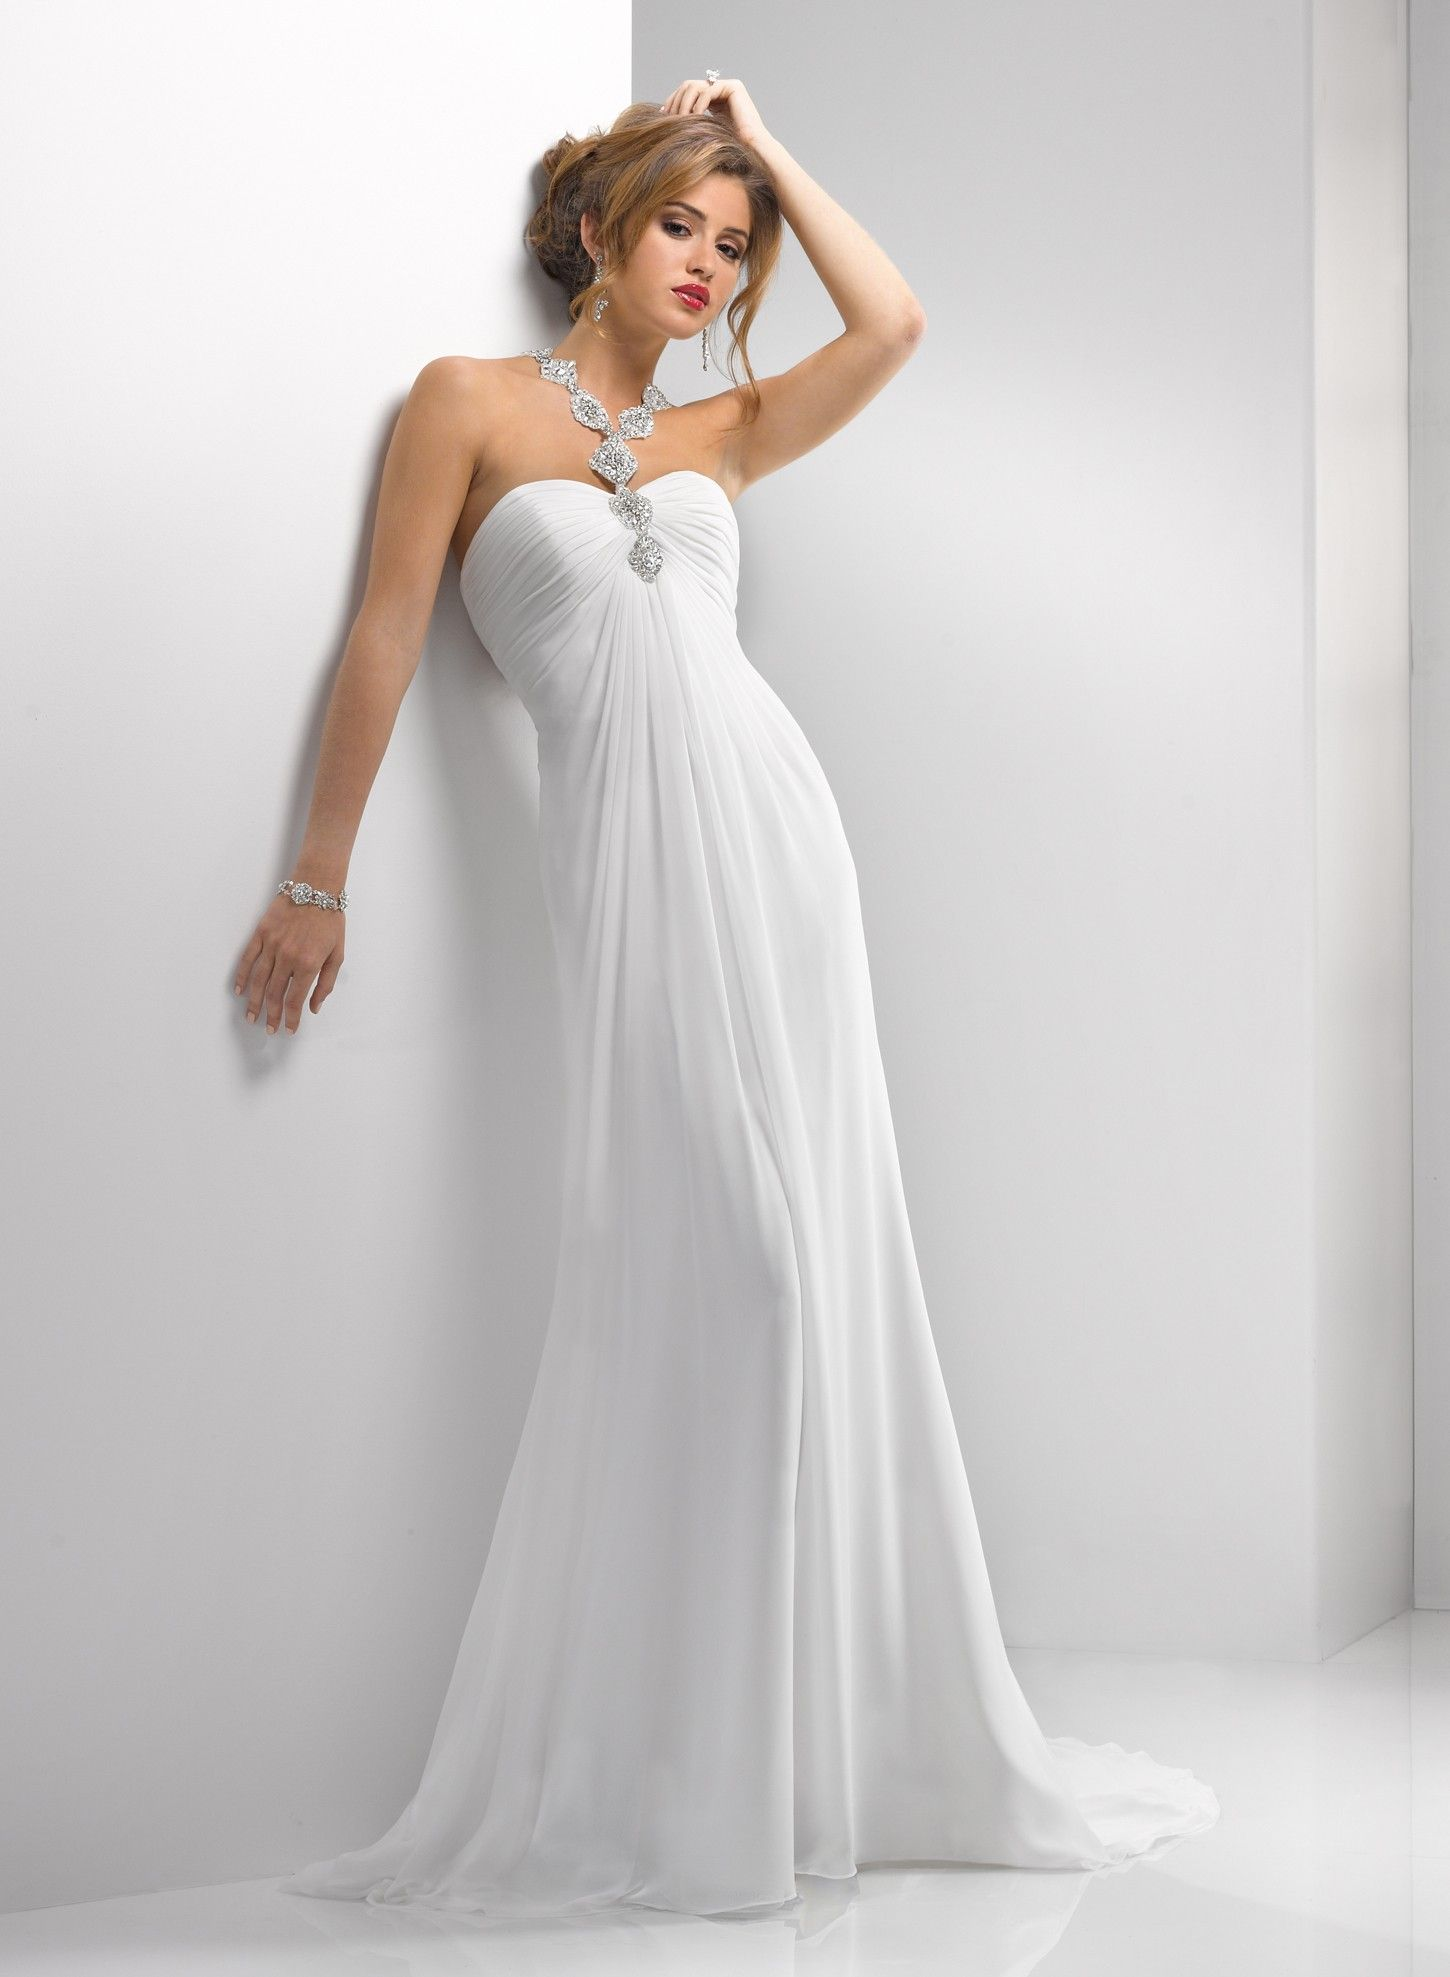 wedding dresses petite Seek Out for Modified A Line Gowns Petite Wedding Dresses Tips for Our